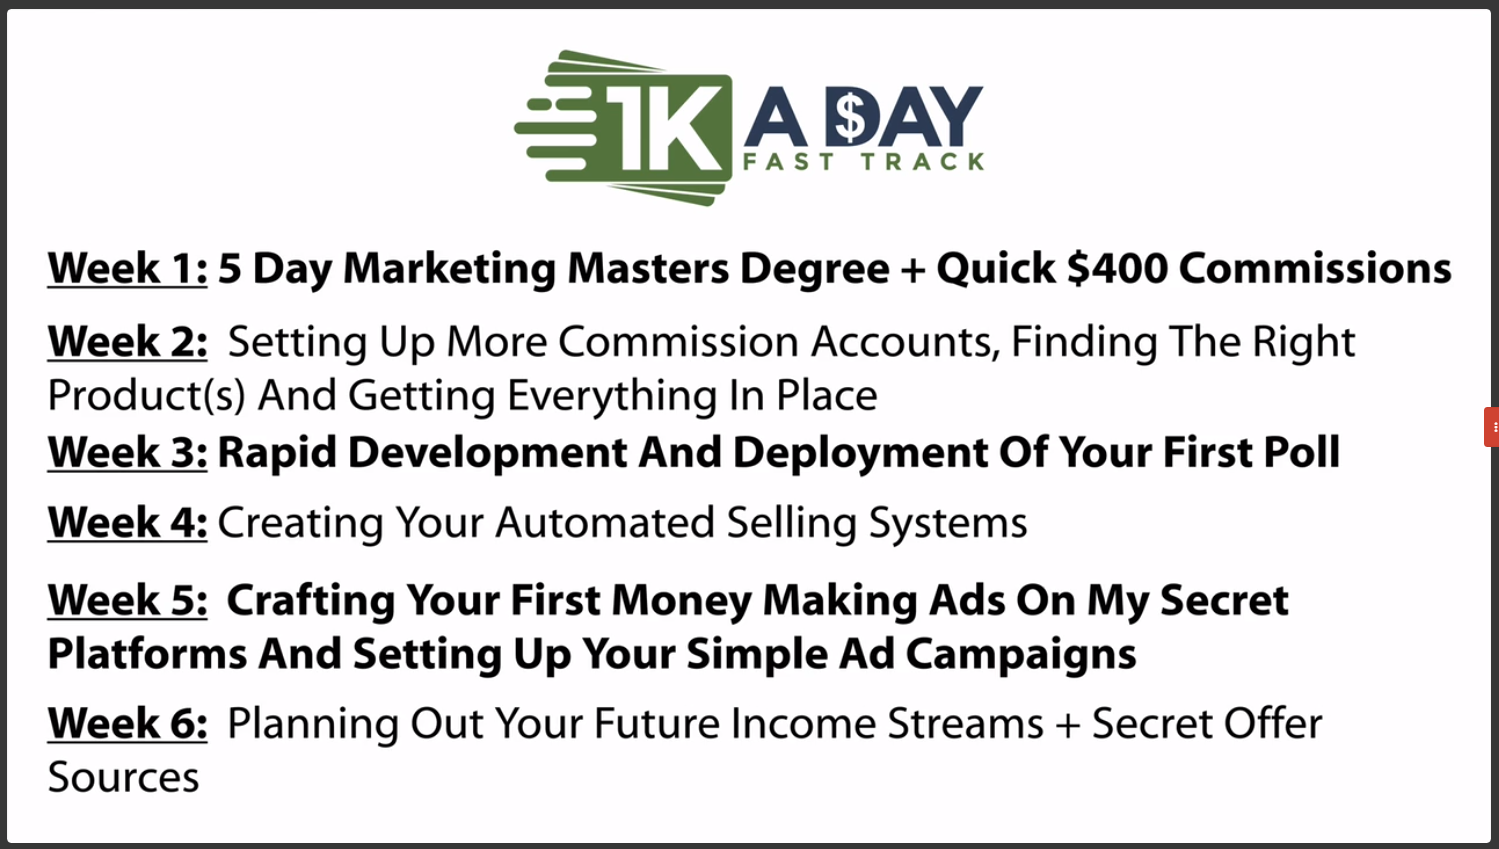 Training Program 1k A Day Fast Track Refurbished Amazon